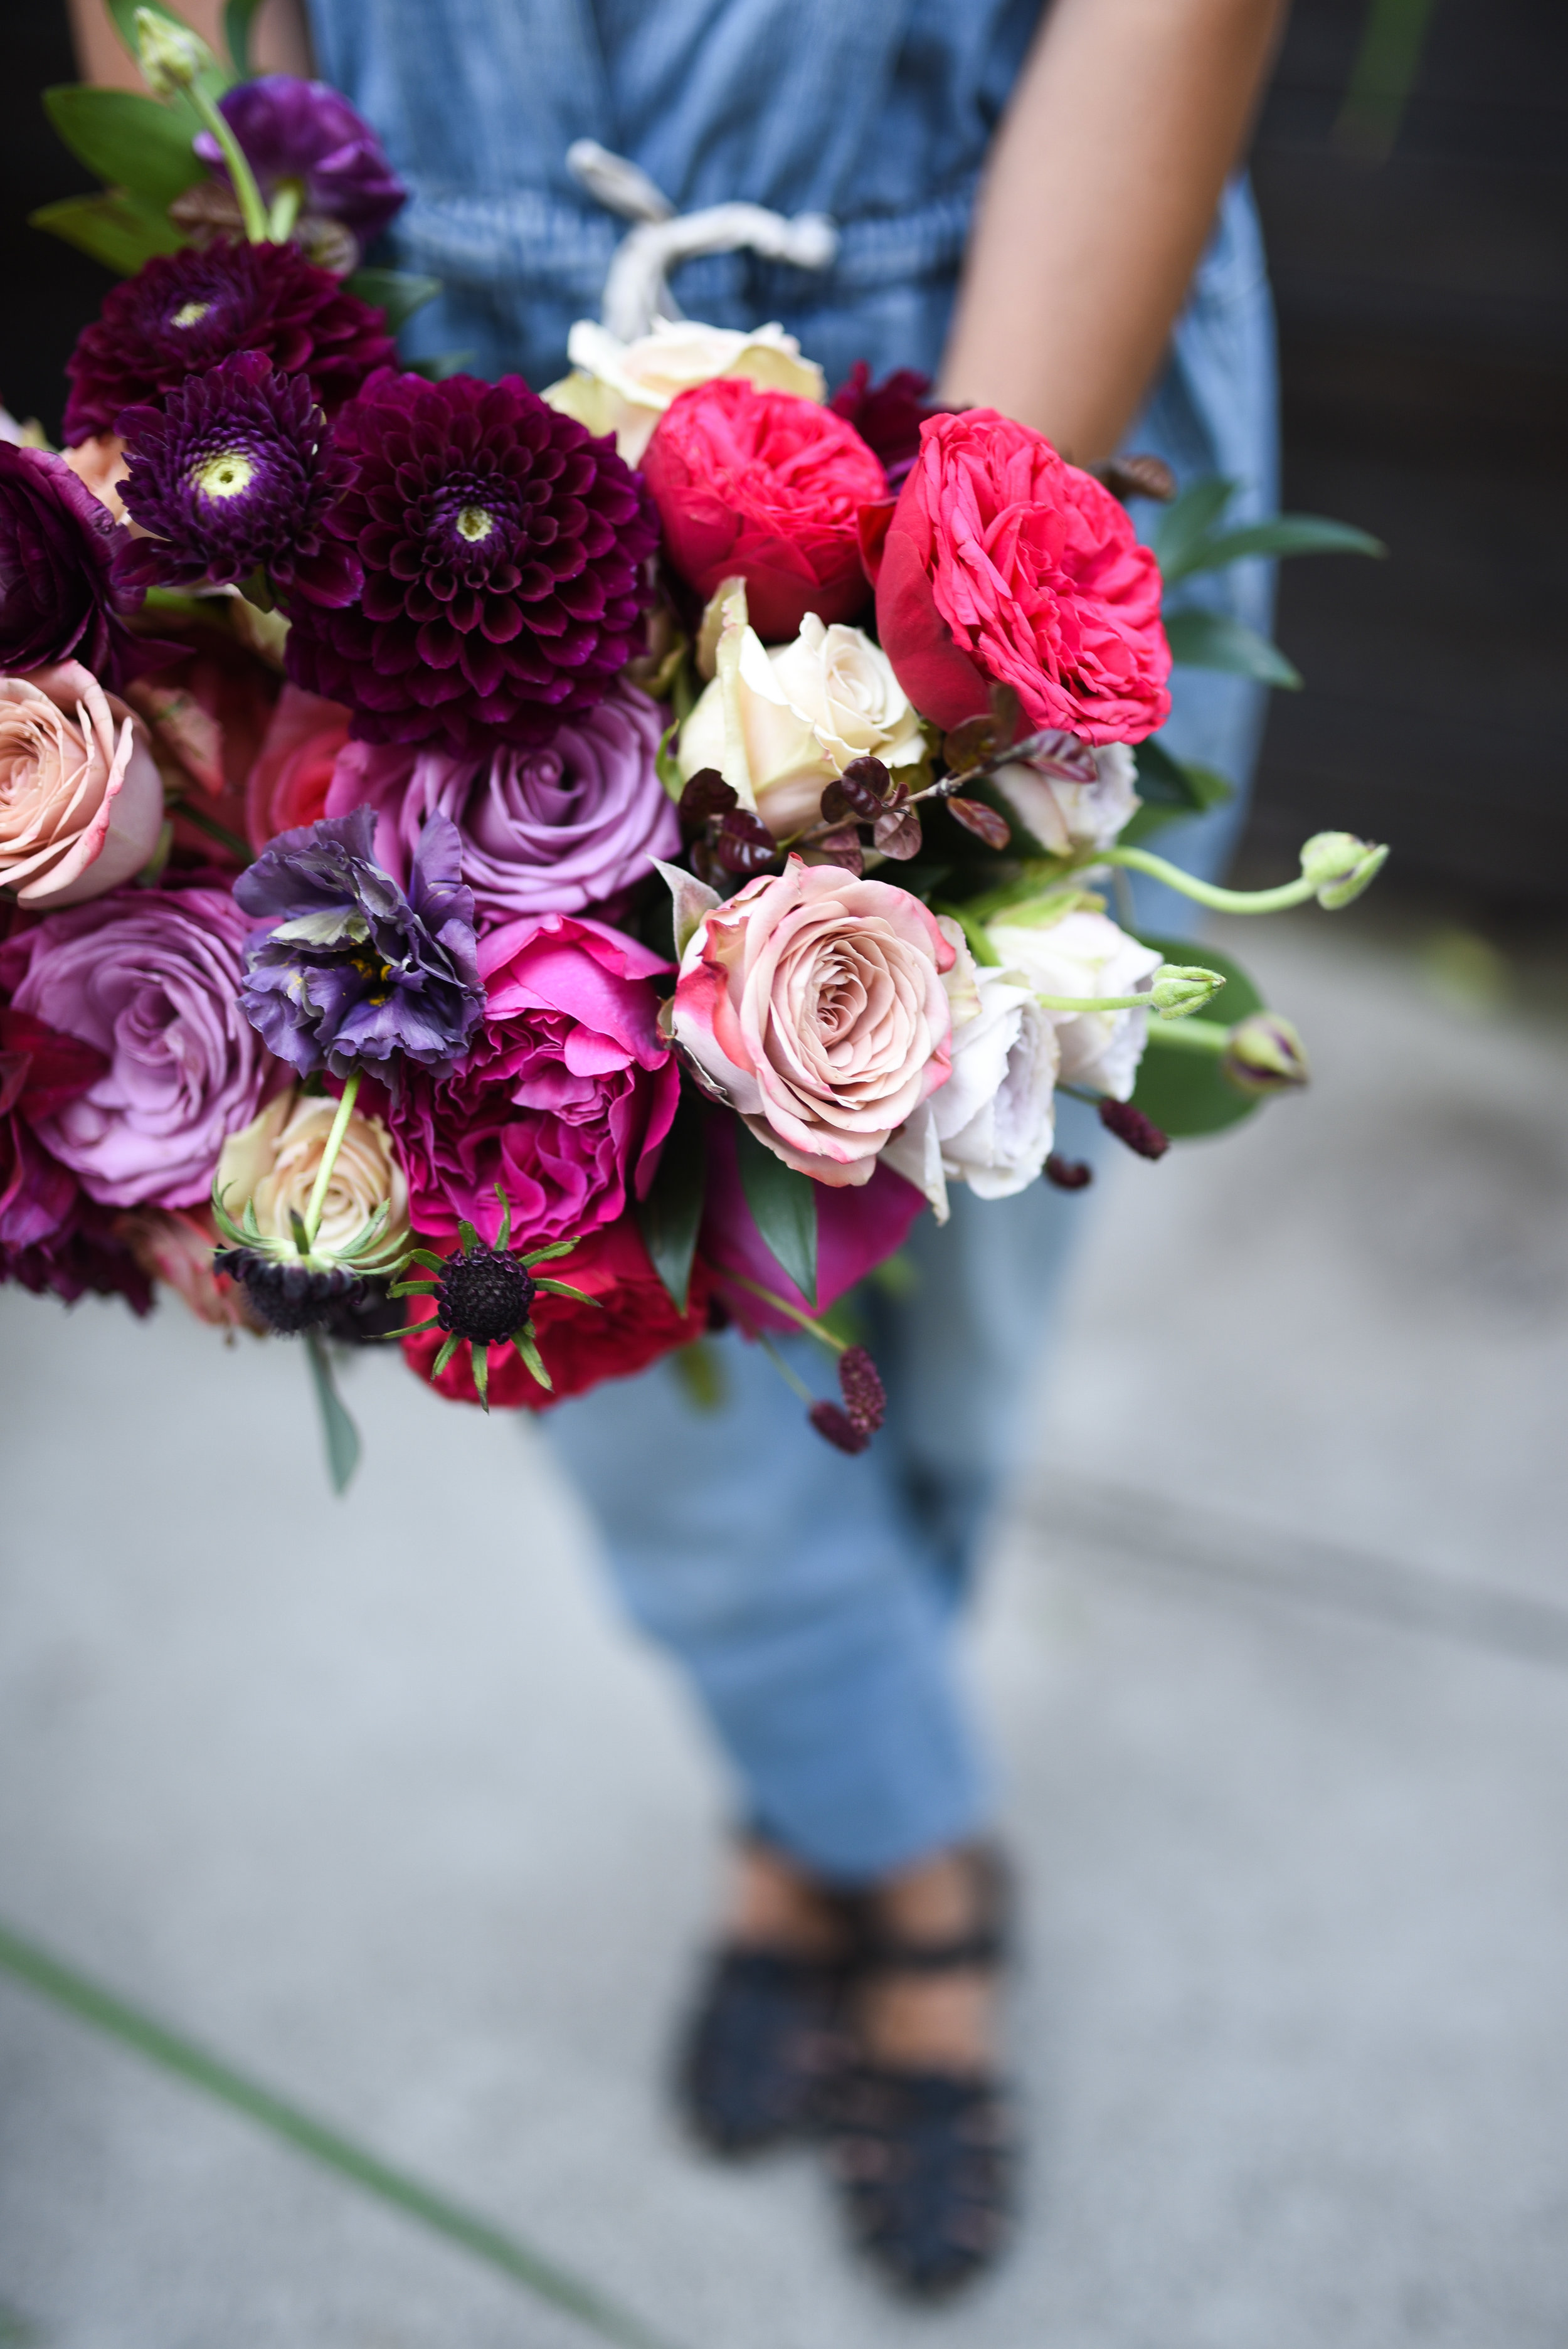 A closer shot of the final bridal bouquet being held up by one of the Rosehip girls